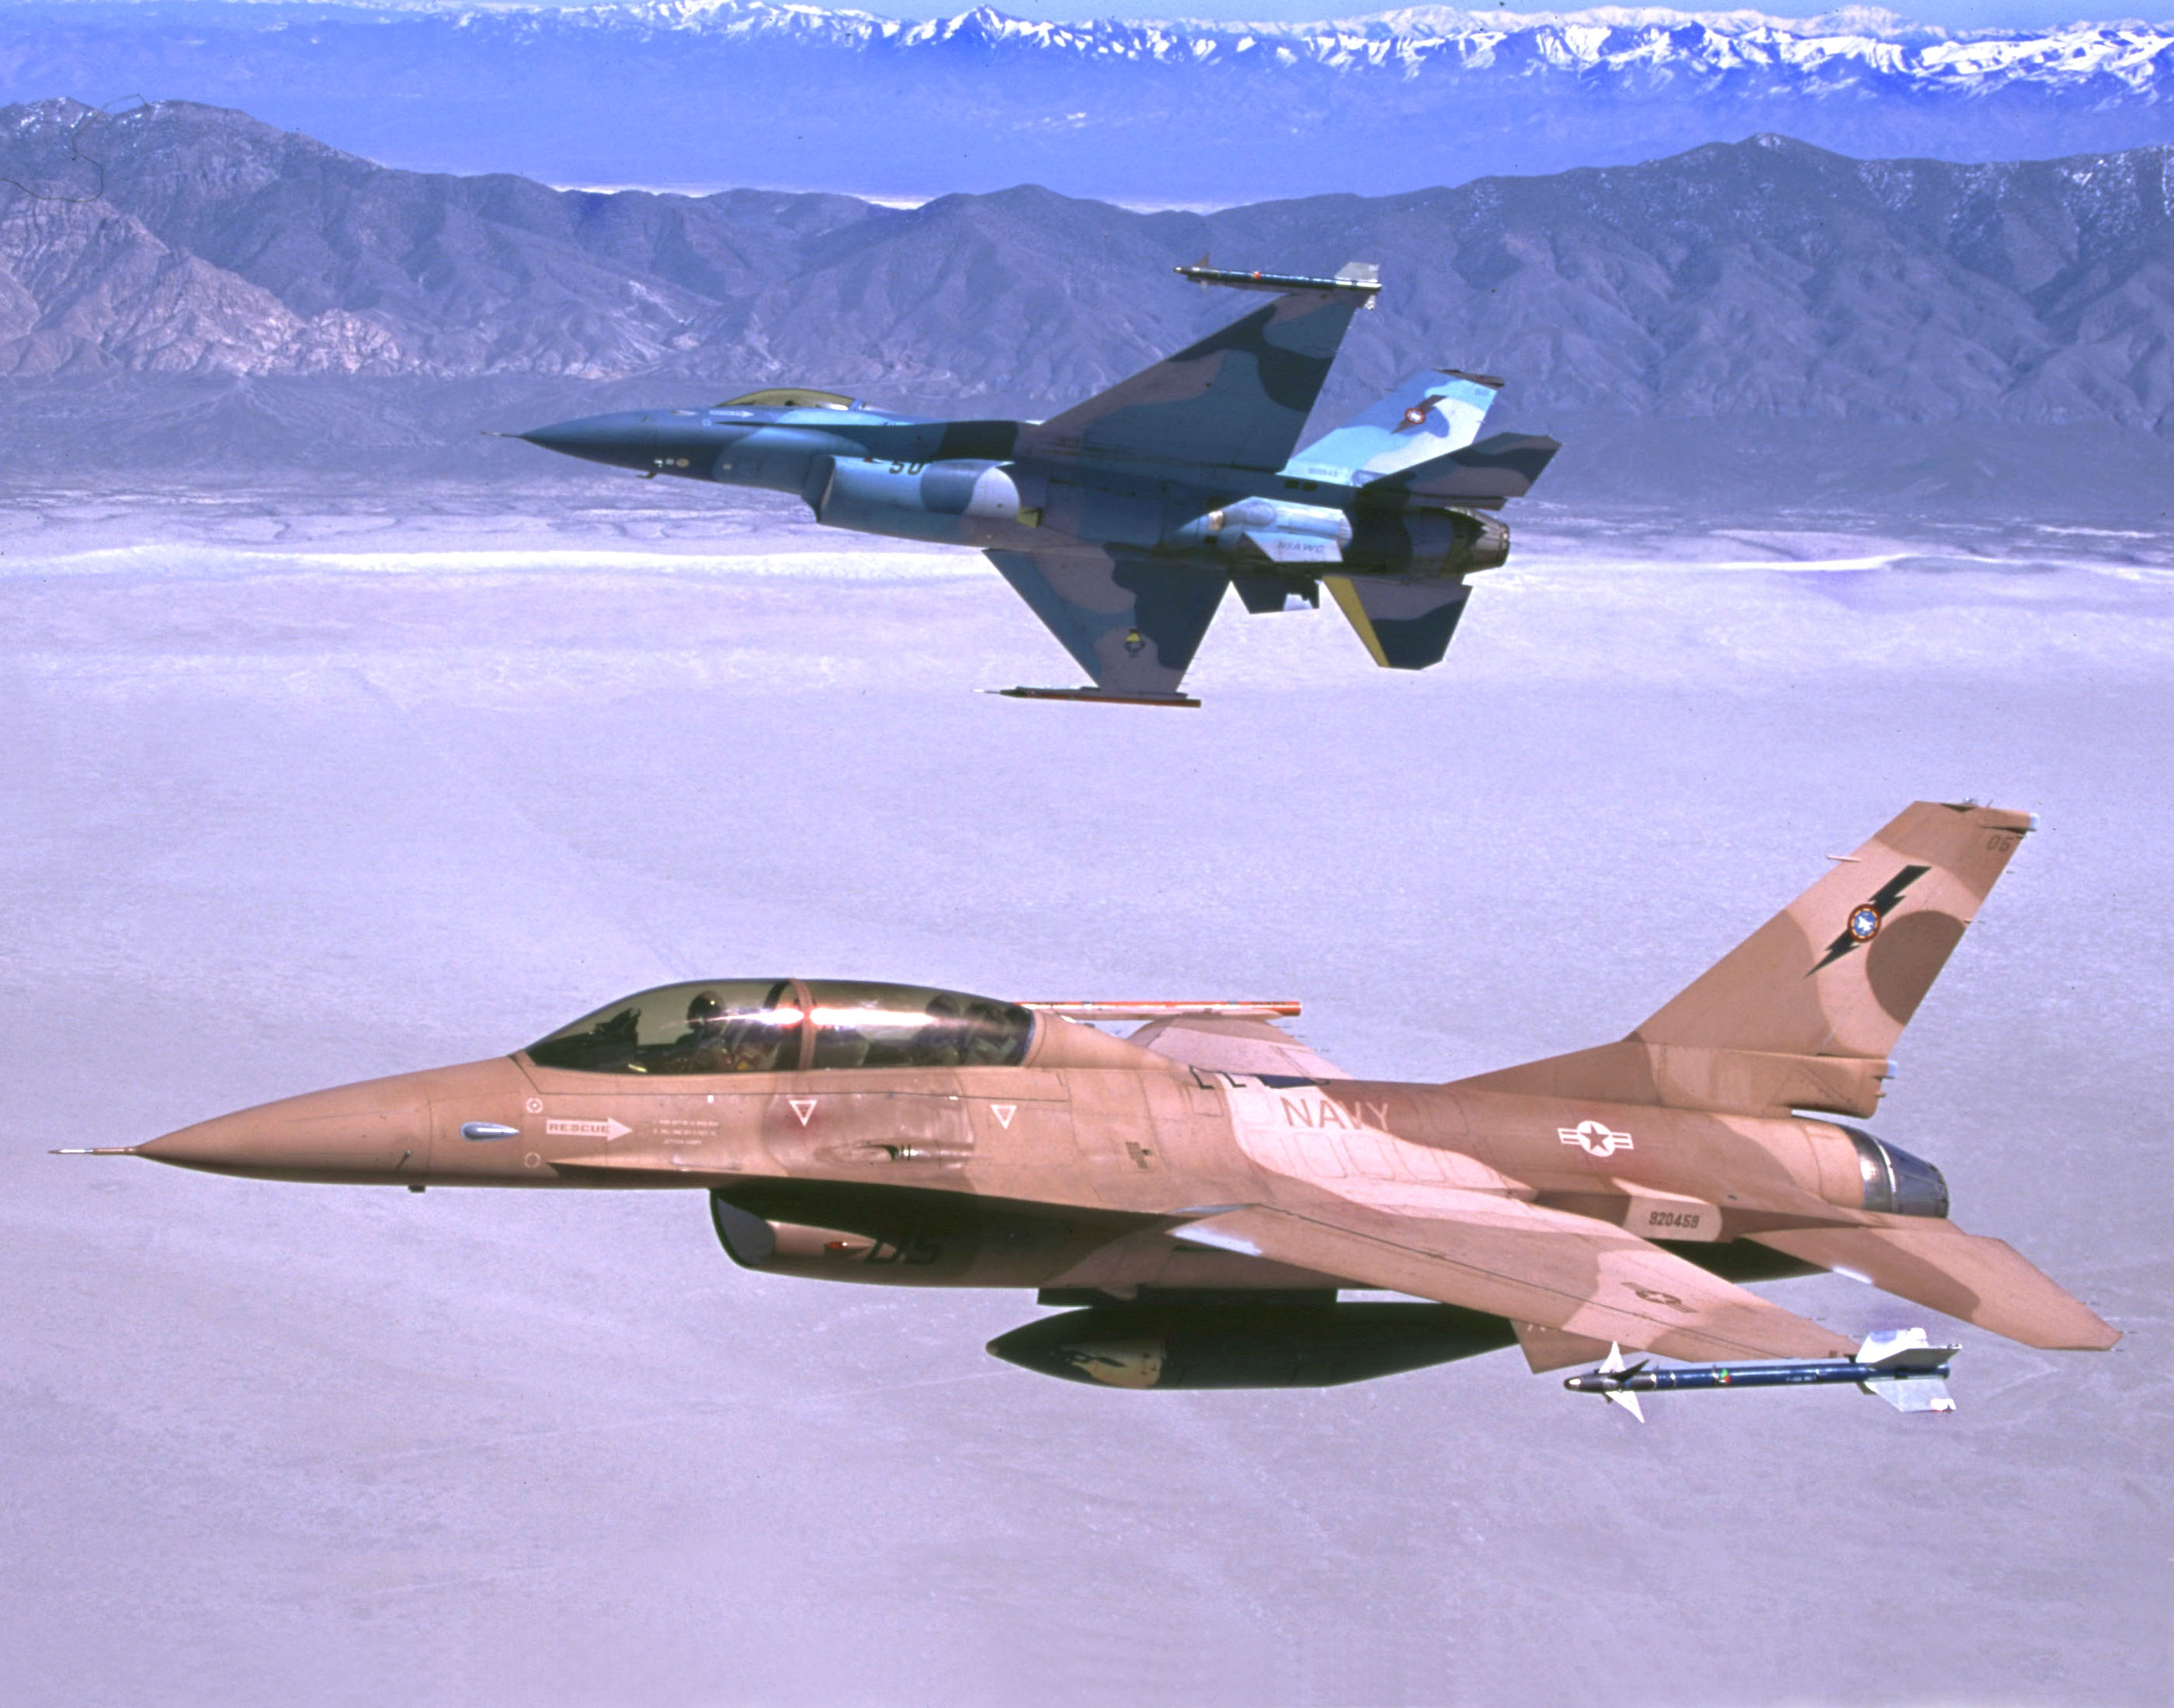 Jets in flight over the playa.